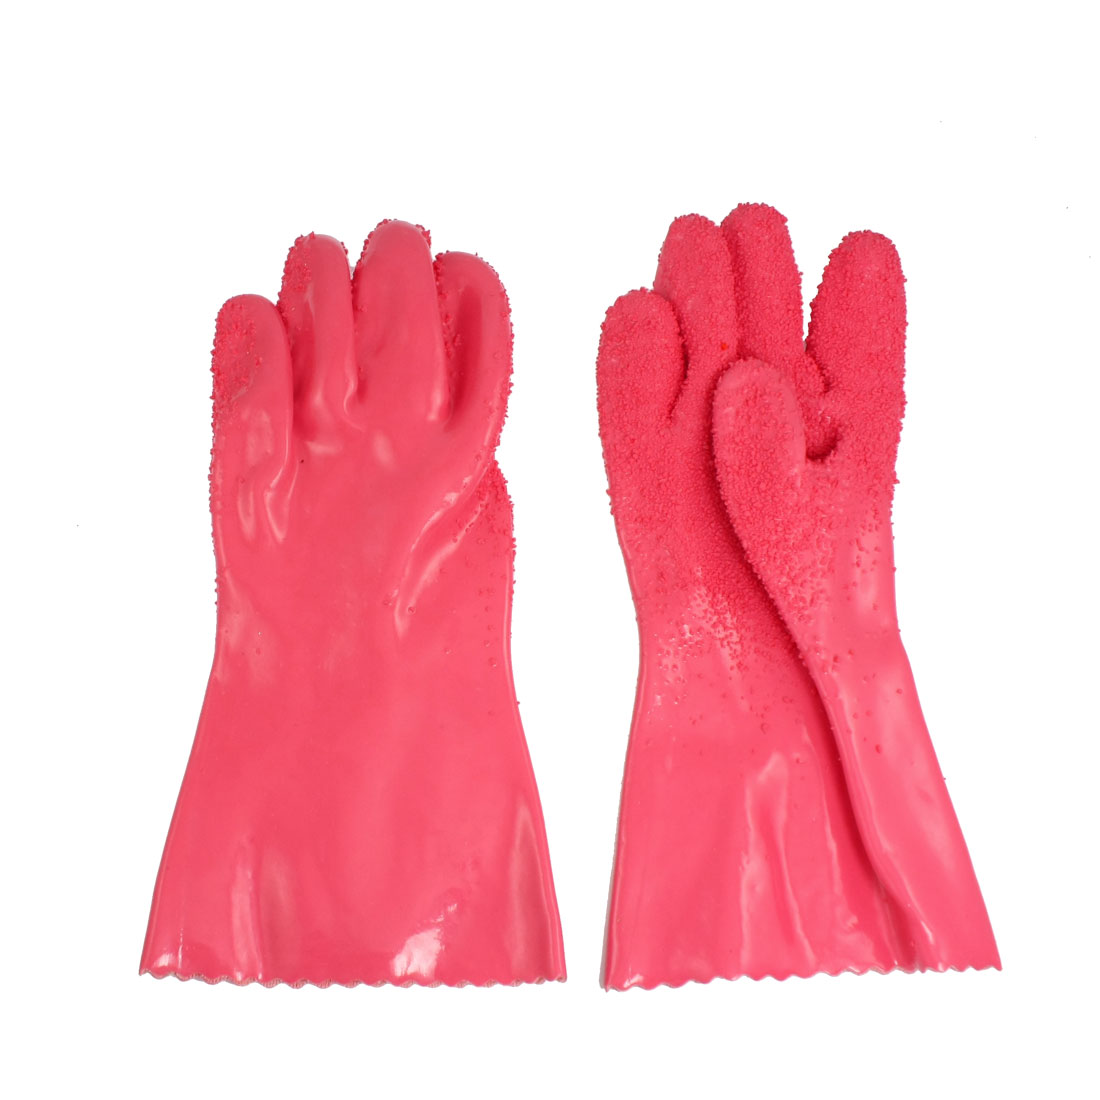 Pair Watermelon Pink Rubber Fruits Vegetables Peeling Gloves Mitts